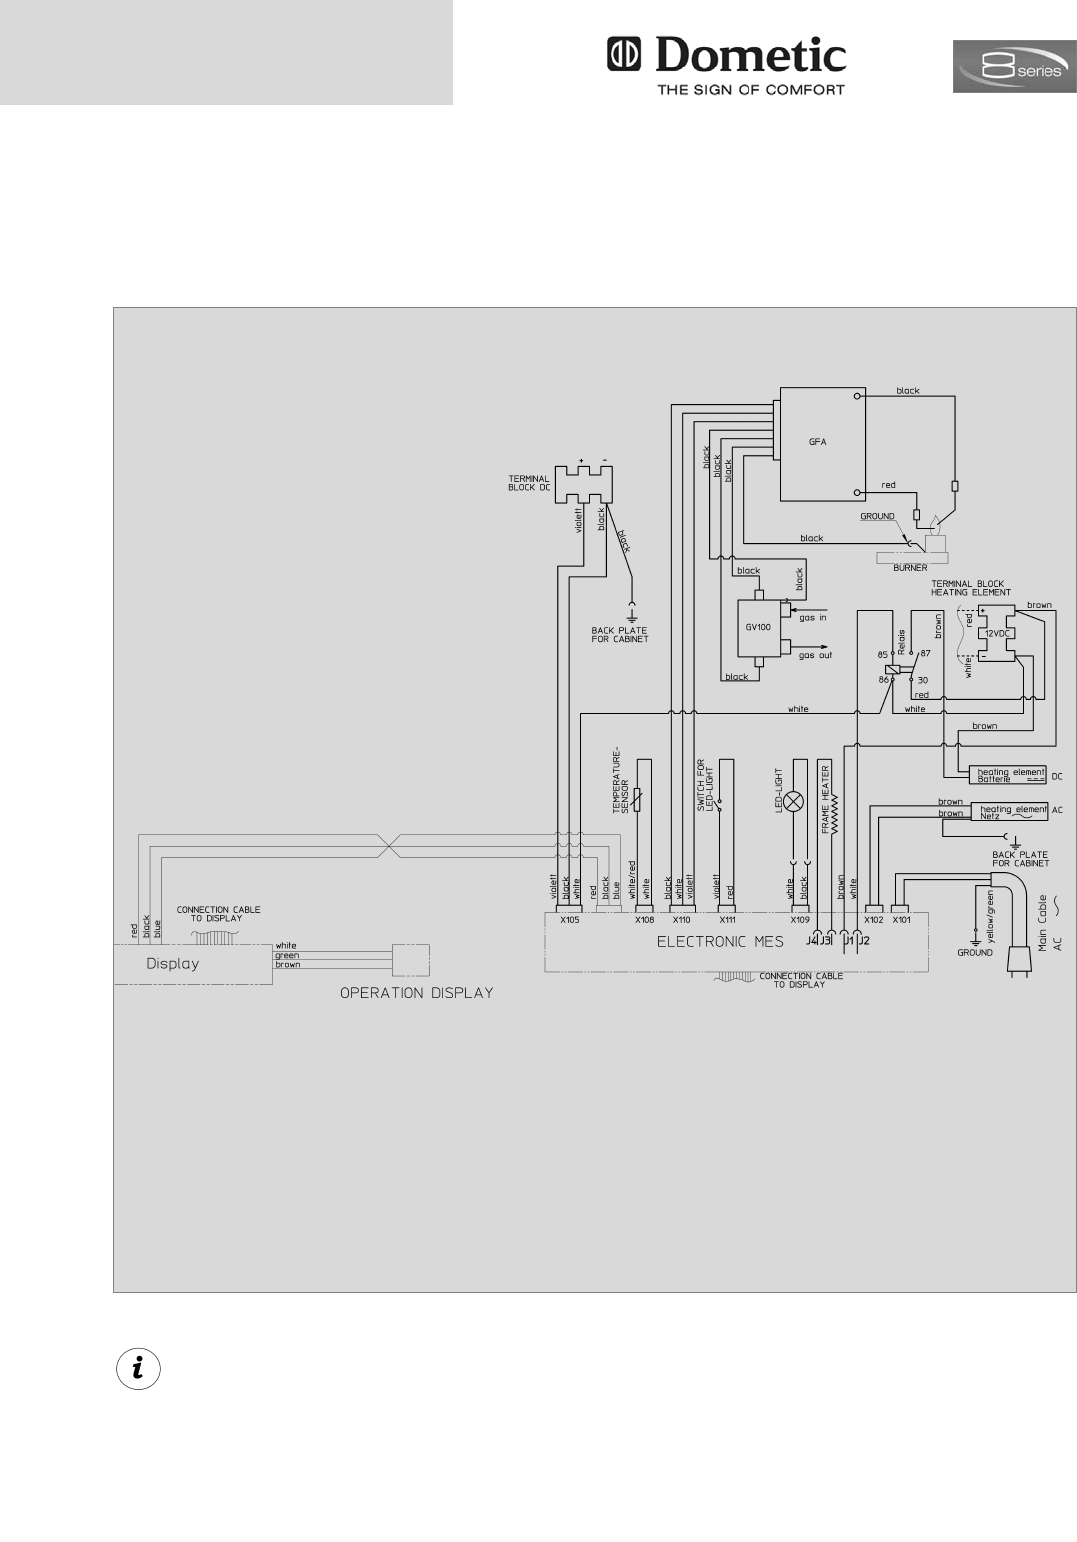 Page 20 of dometic refrigerator rmd 8551 user guide 20 asfbconference2016